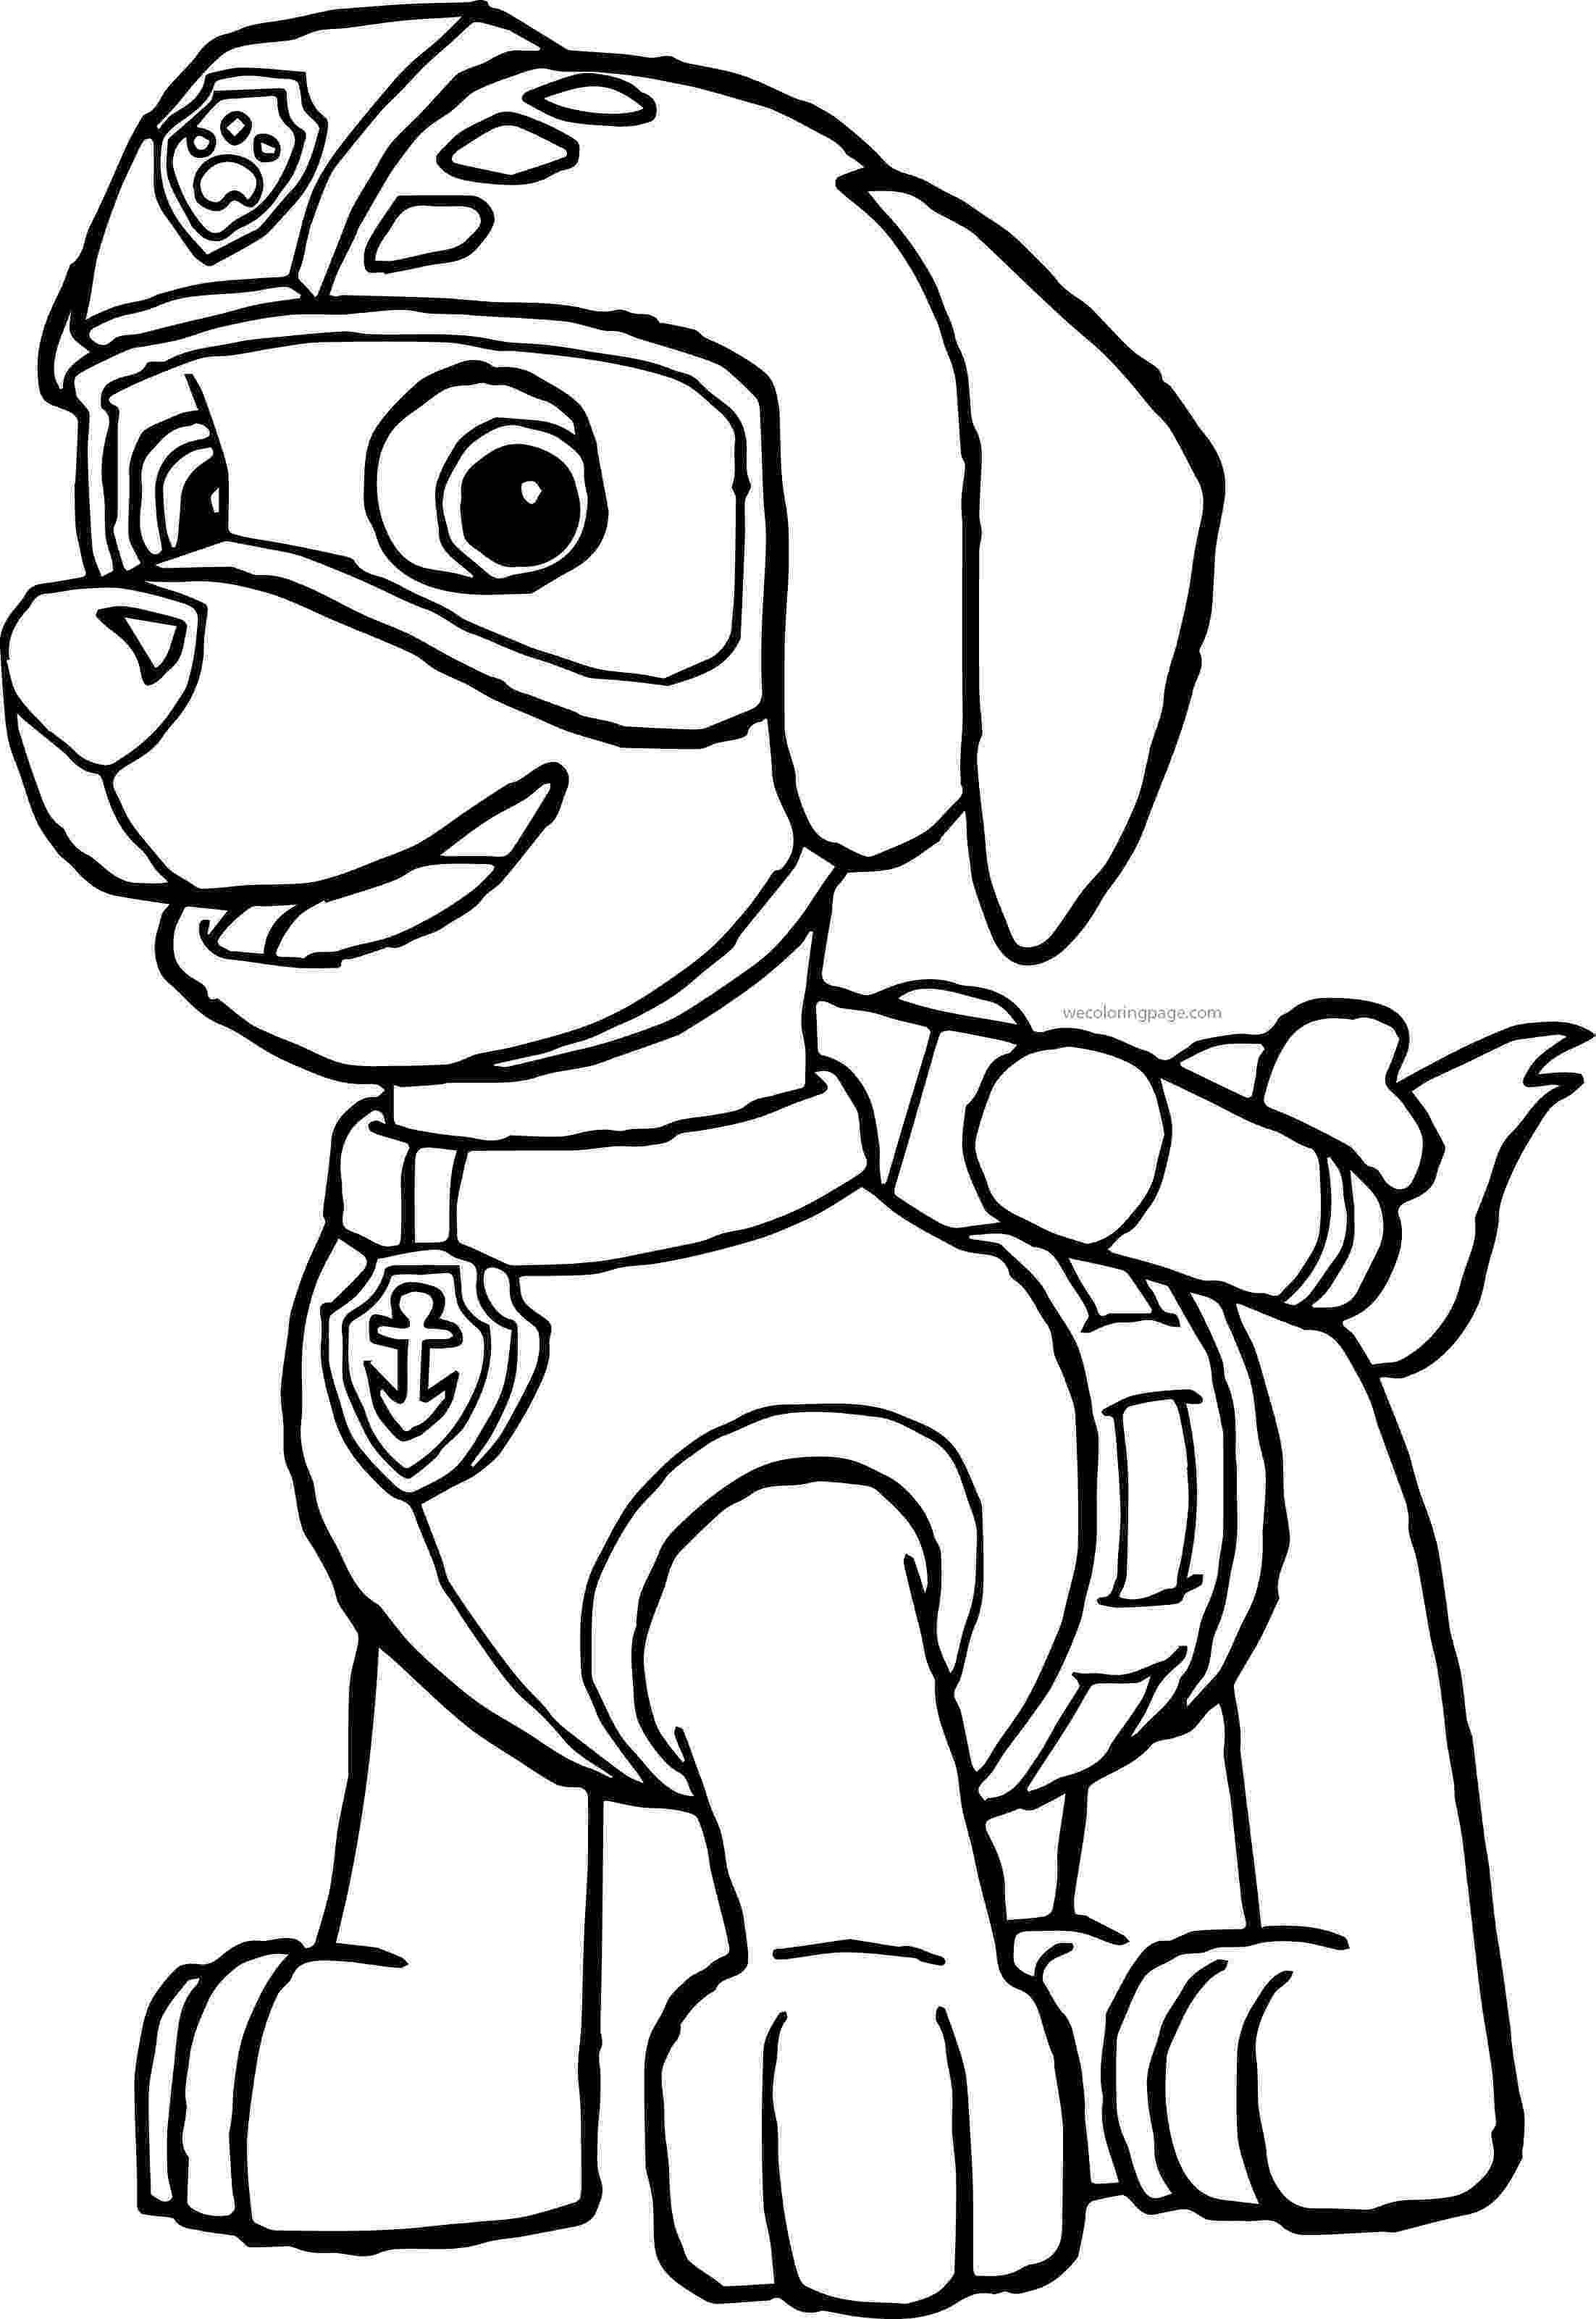 rocky from paw patrol paw patrol rubble and rocky coloring page free printable from paw rocky patrol